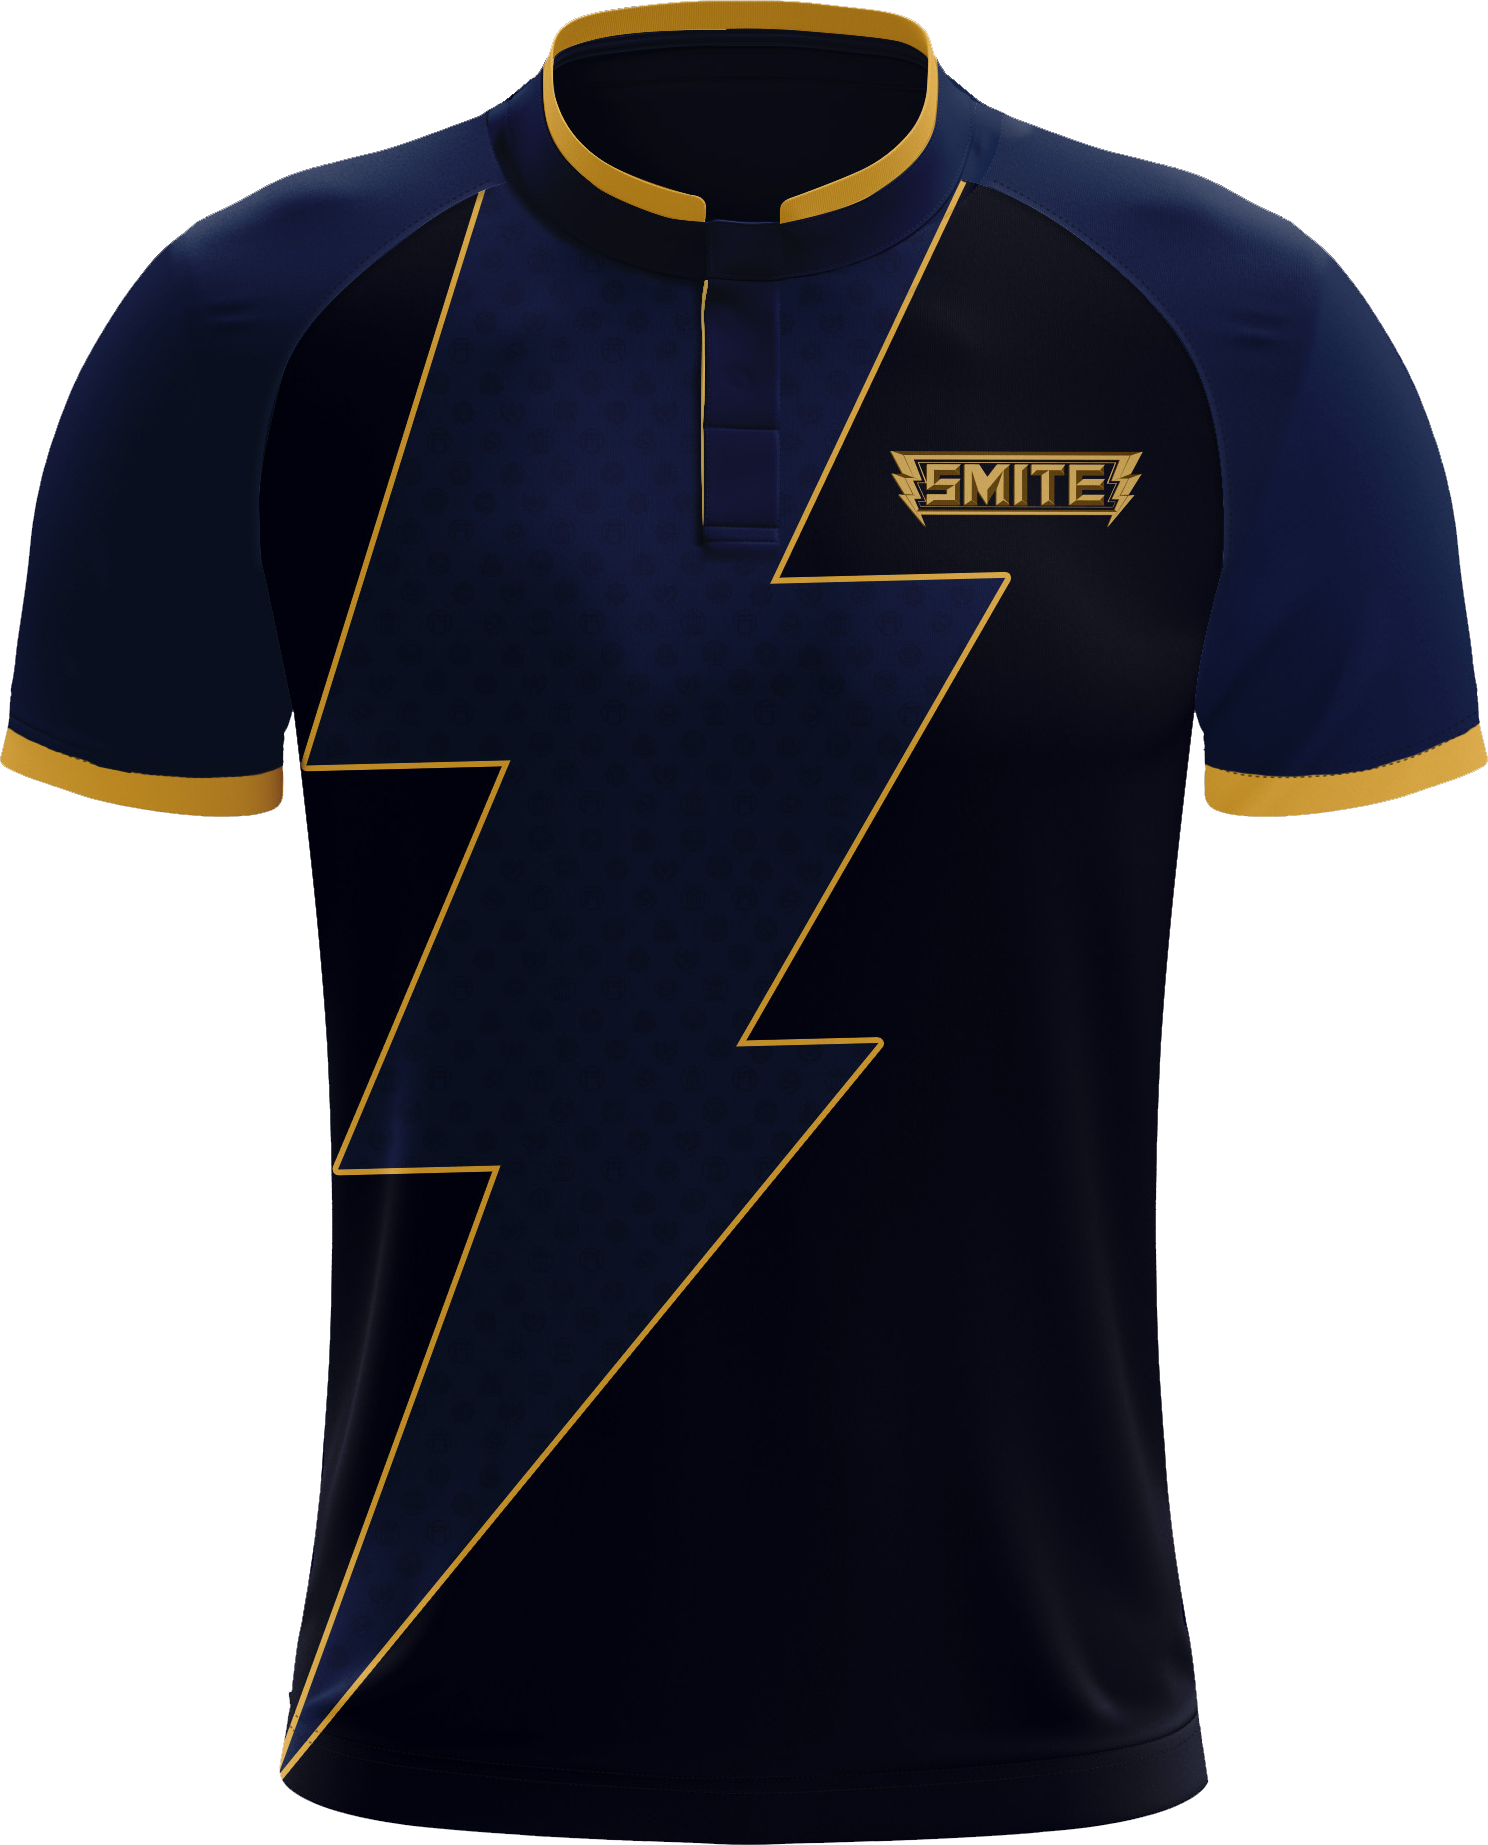 Sports jersey png. Smite official store